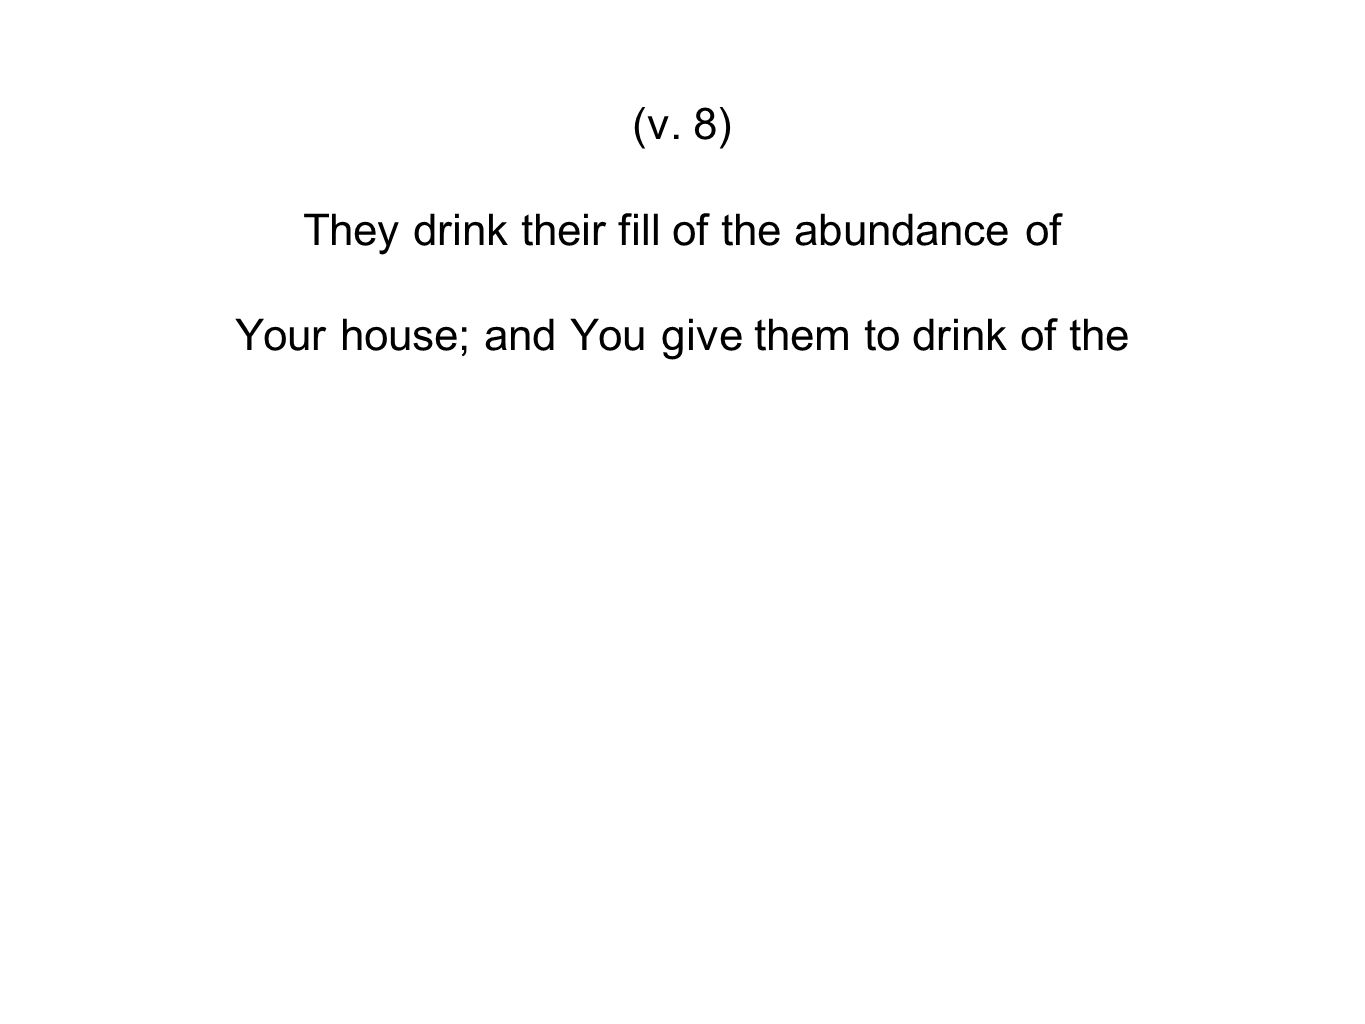 (v. 8) They drink their fill of the abundance of Your house; and You give them to drink of the